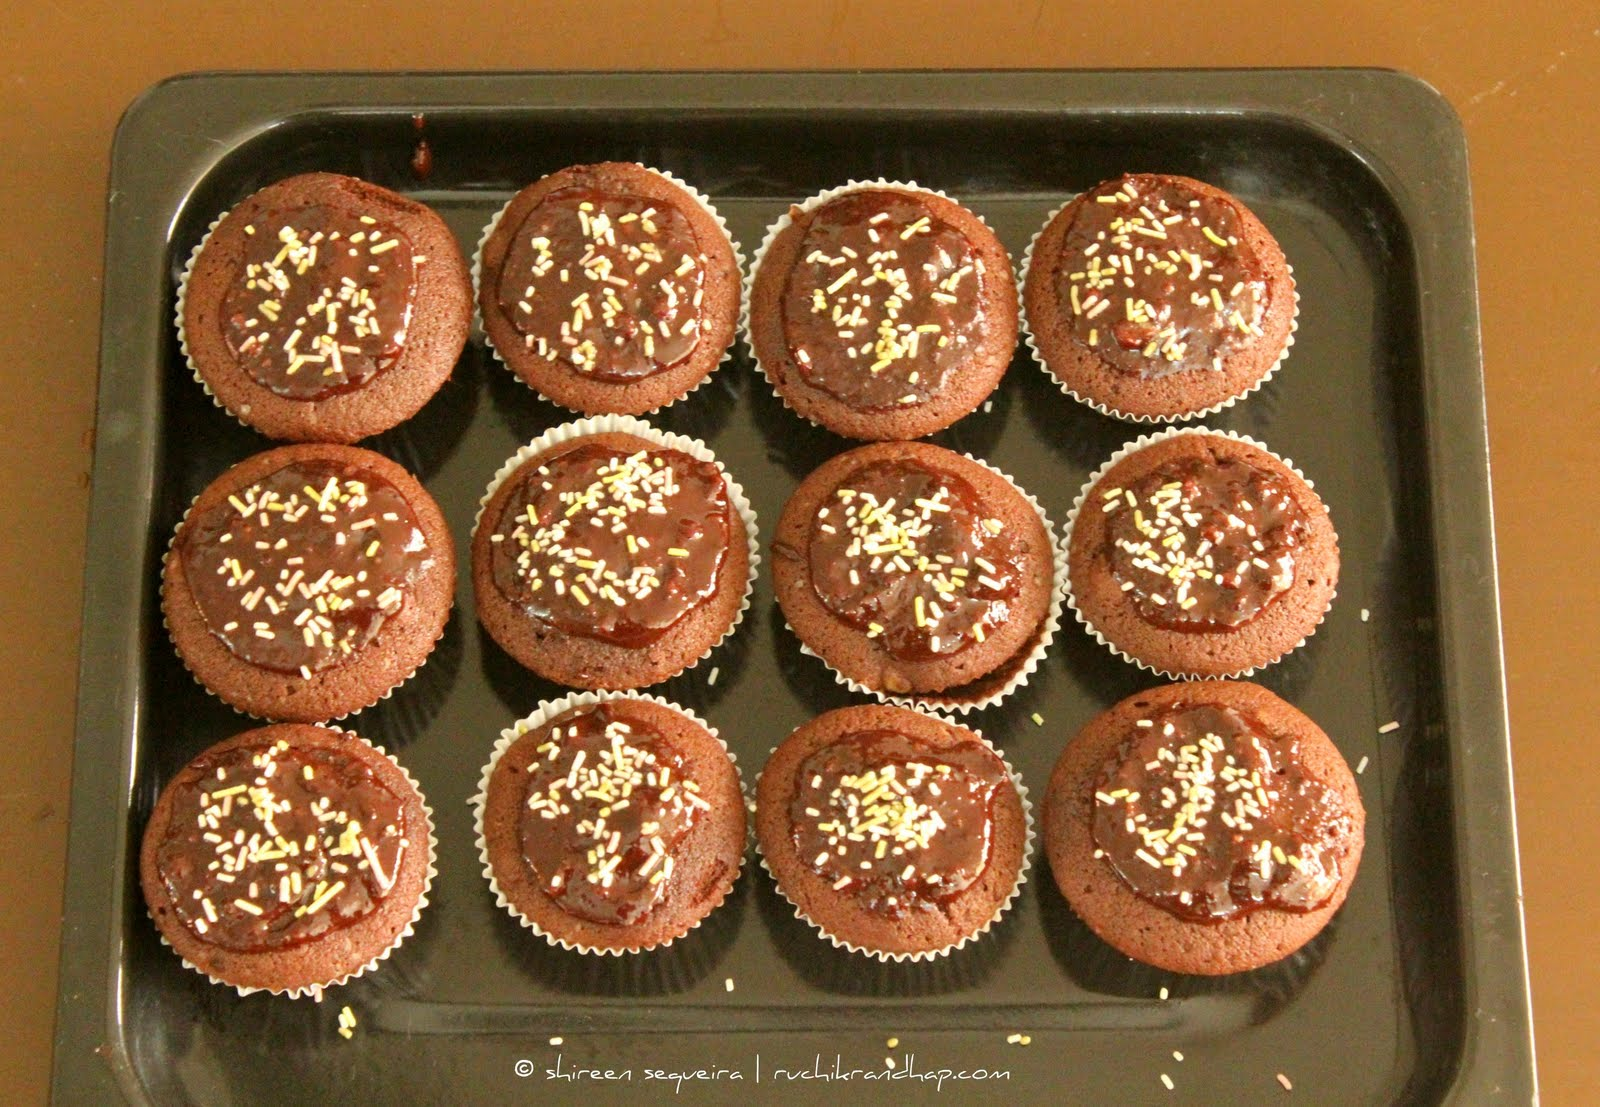 ... ): Chocolate Buttermilk Cupcakes - Bookmarked Recipes Every Tuesday